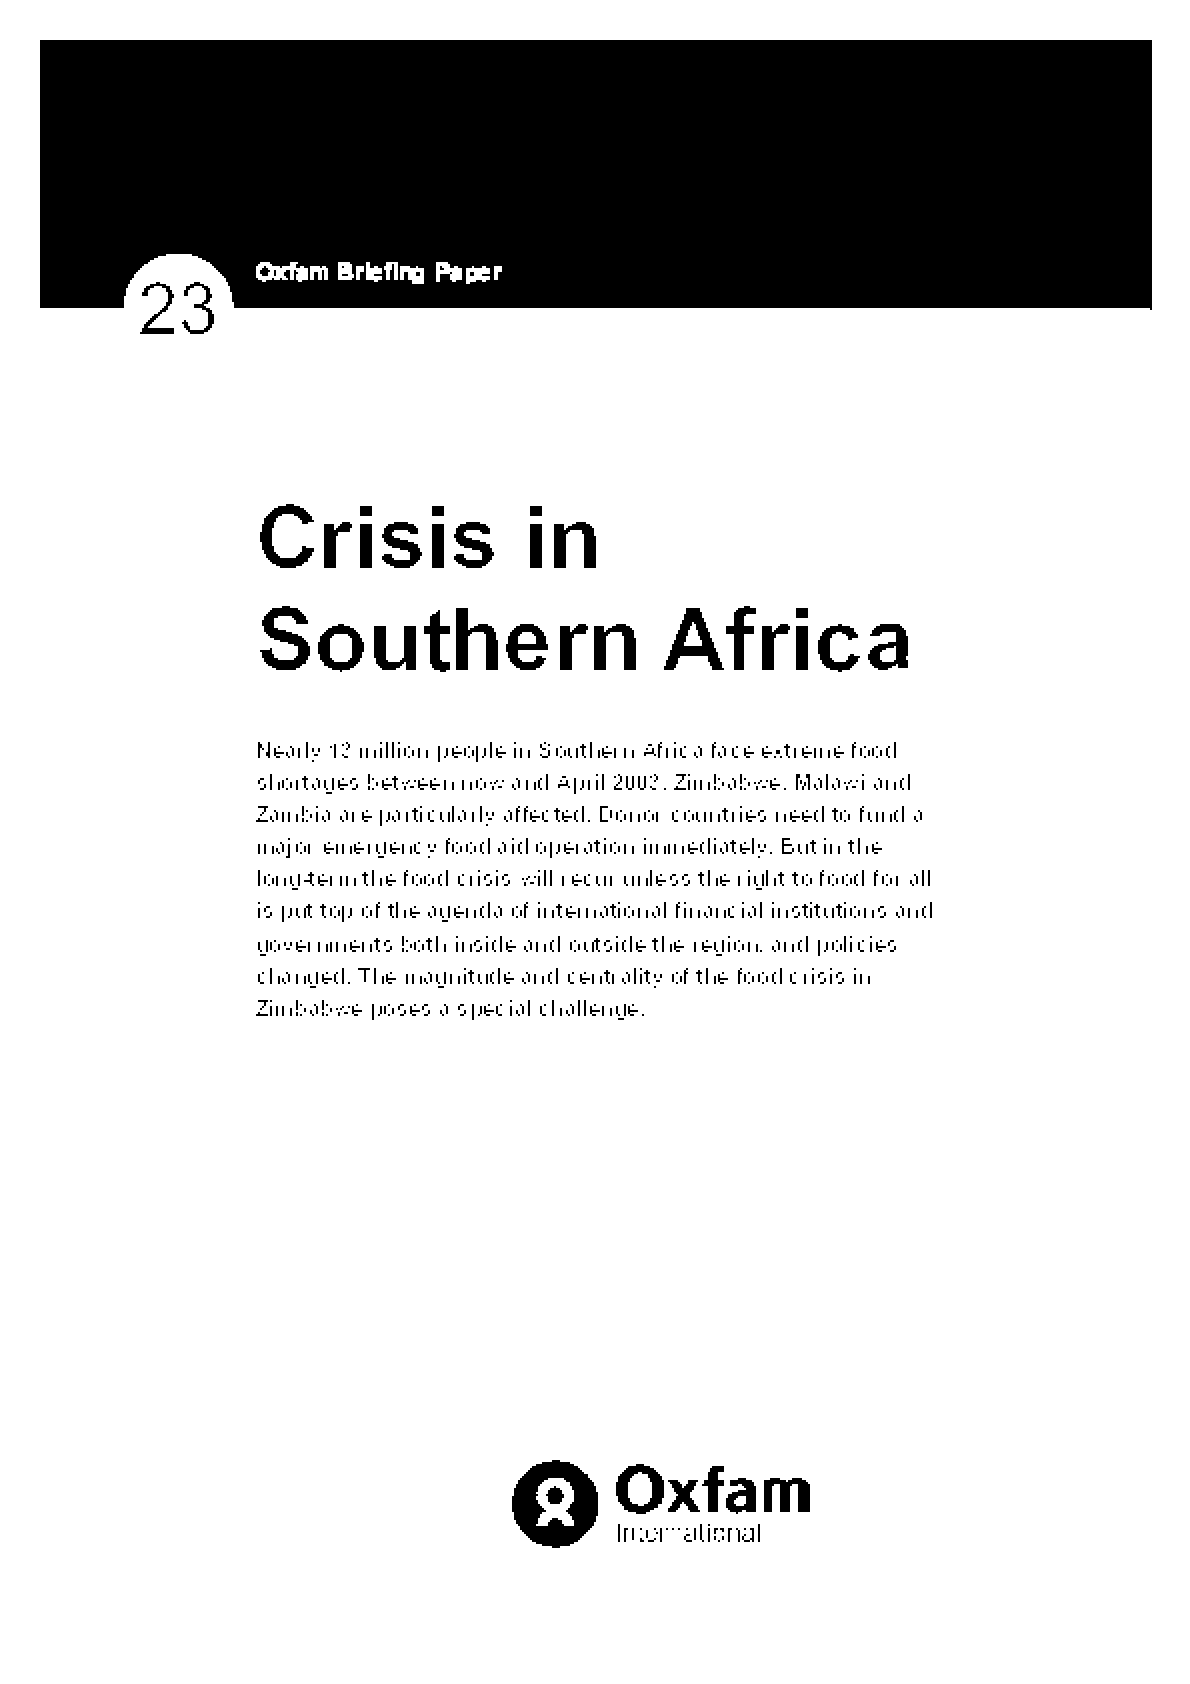 Crisis in Southern Africa